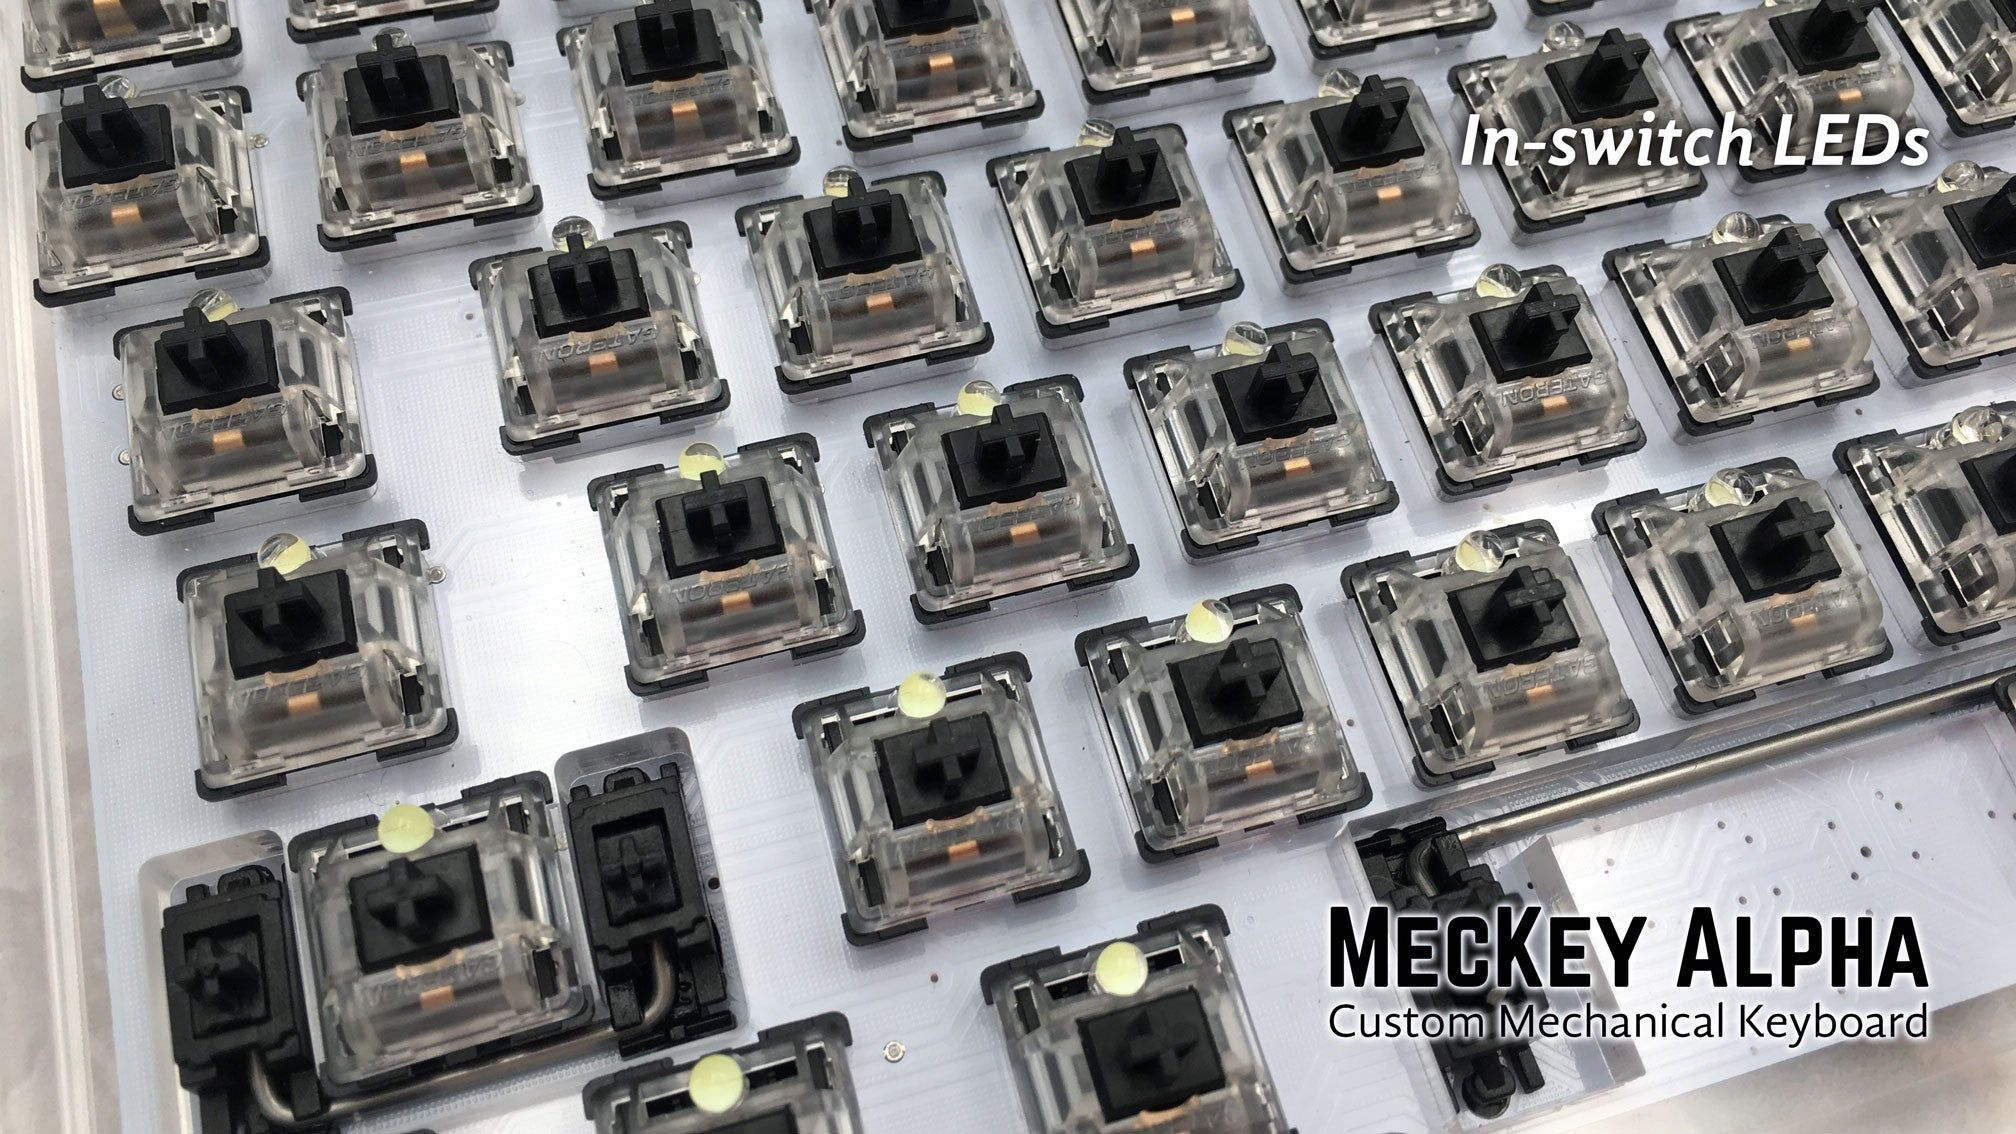 MecKey Alpha 98 Layout Acrylic Mechanical Keyboard Gateron Black Switches Left View